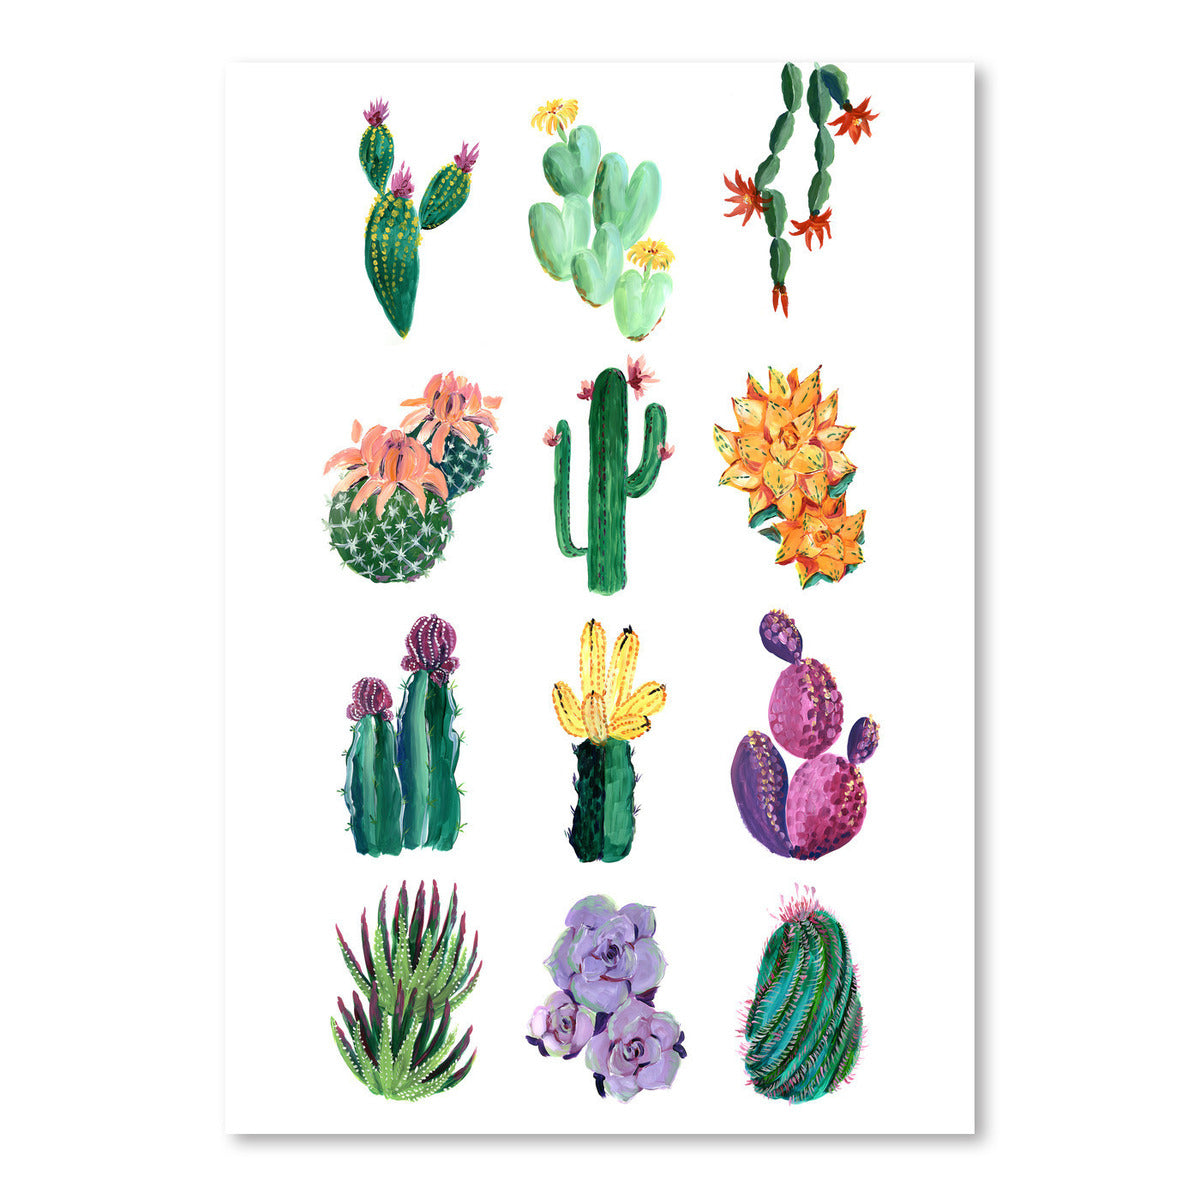 Collection Of Colorful Cacti And Succulents by Blursbyai - Art Print - Americanflat